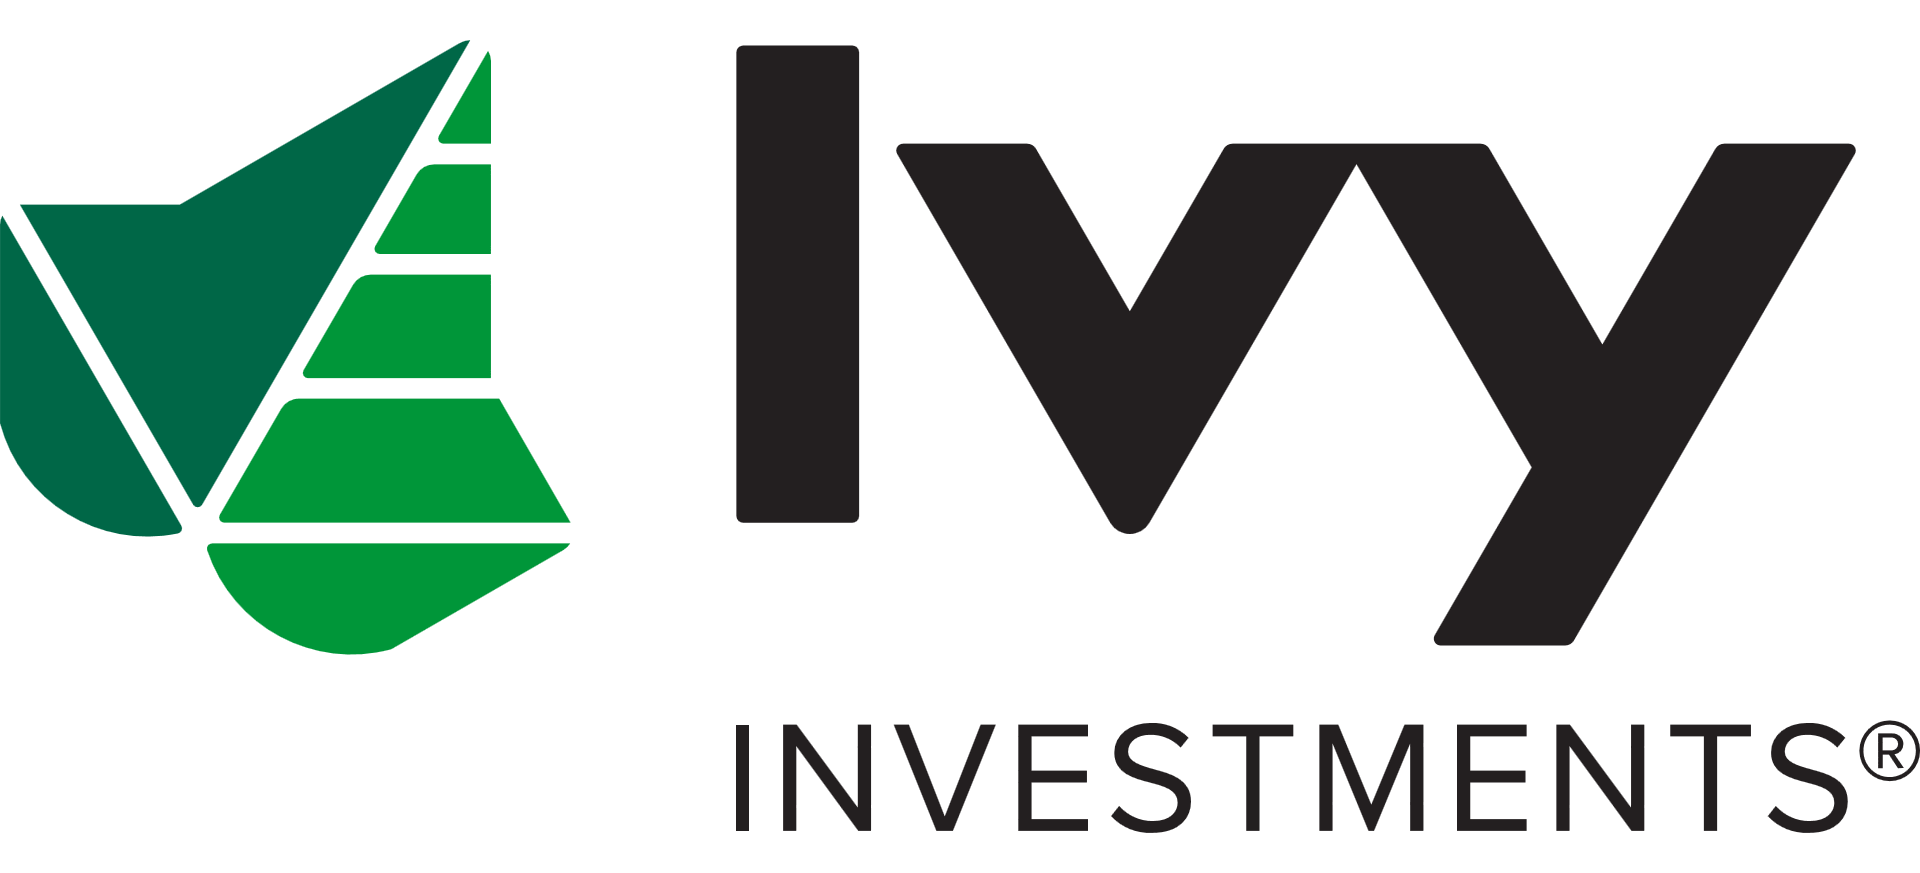 ivy investments logo 3c RGB BLACK